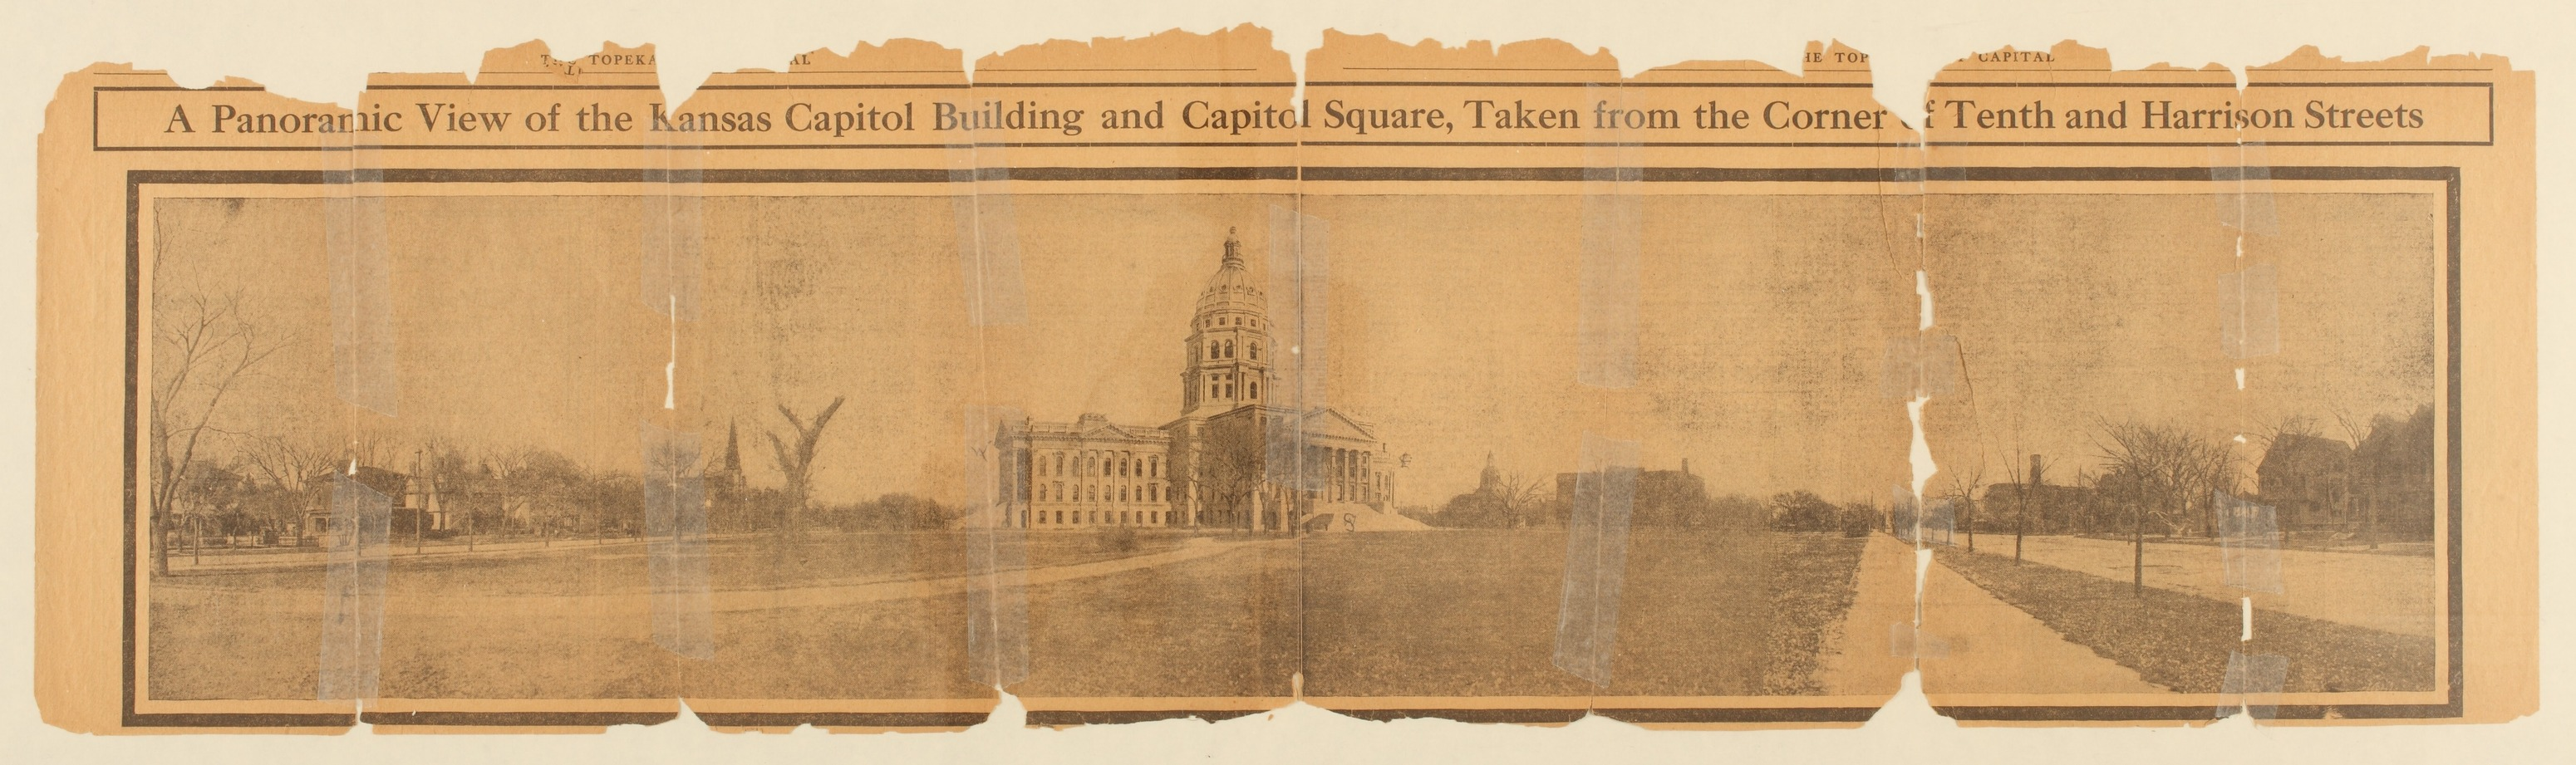 A panoramic view of the Kansas capitol building, Topeka, Kansas